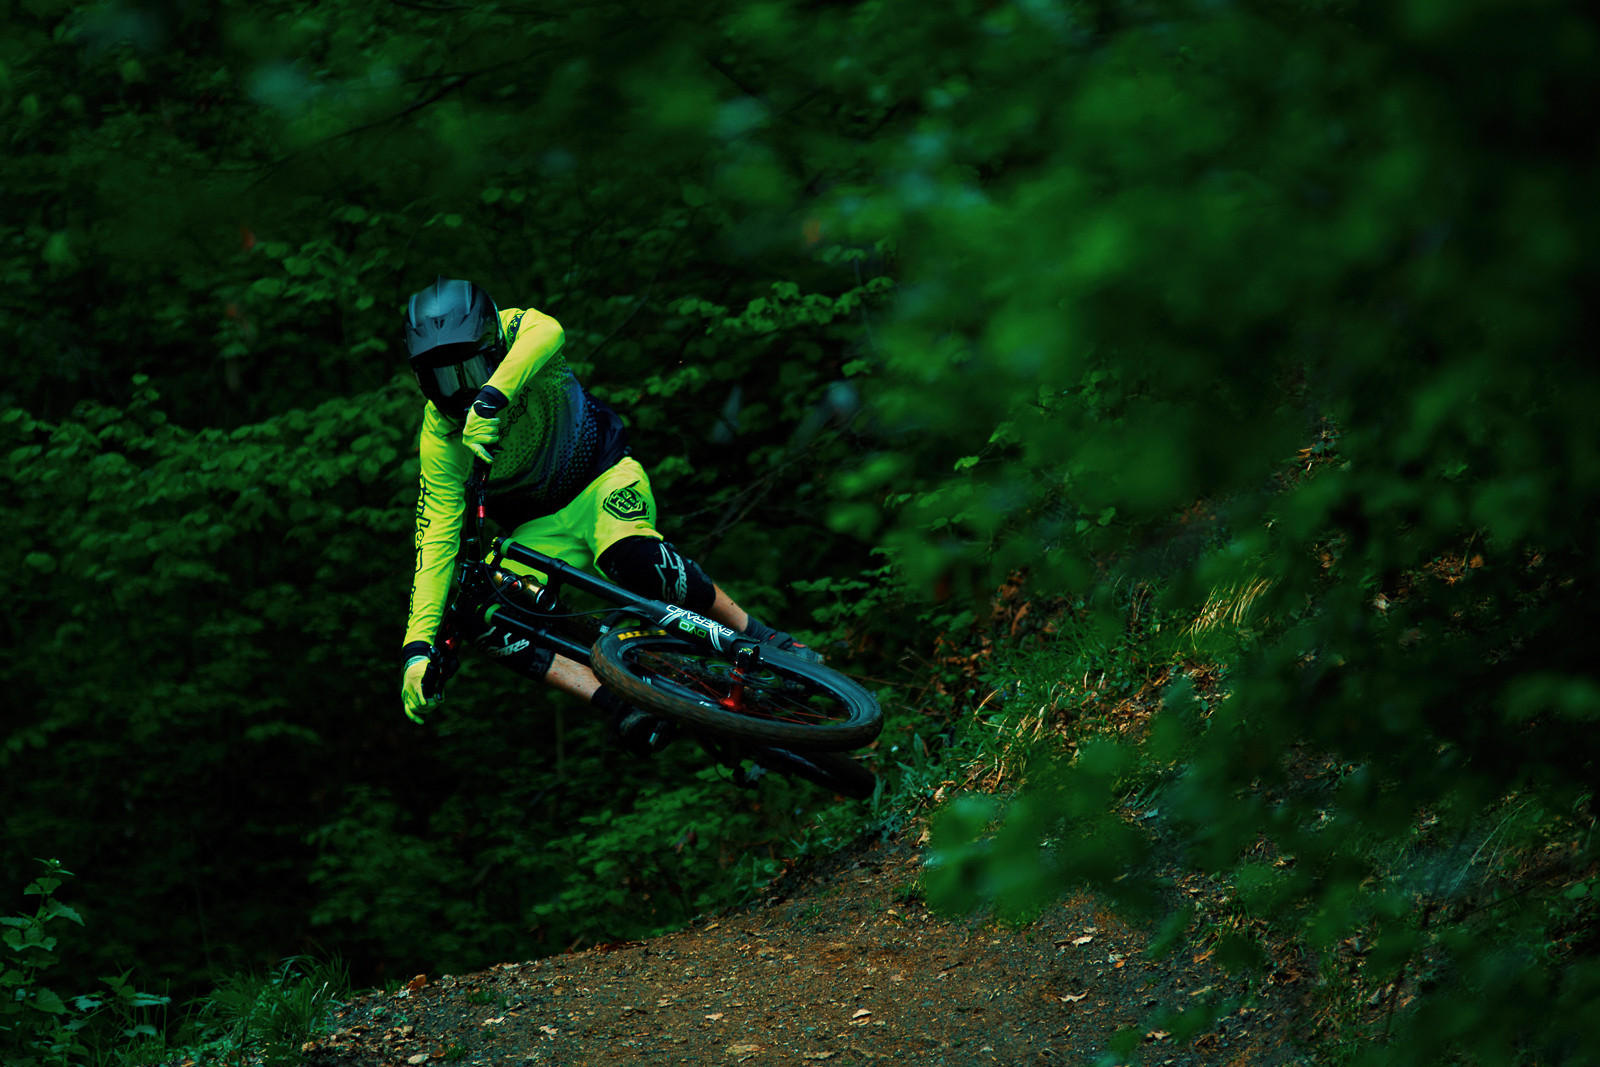 Green Mile - EWIA - Mountain Biking Pictures - Vital MTB